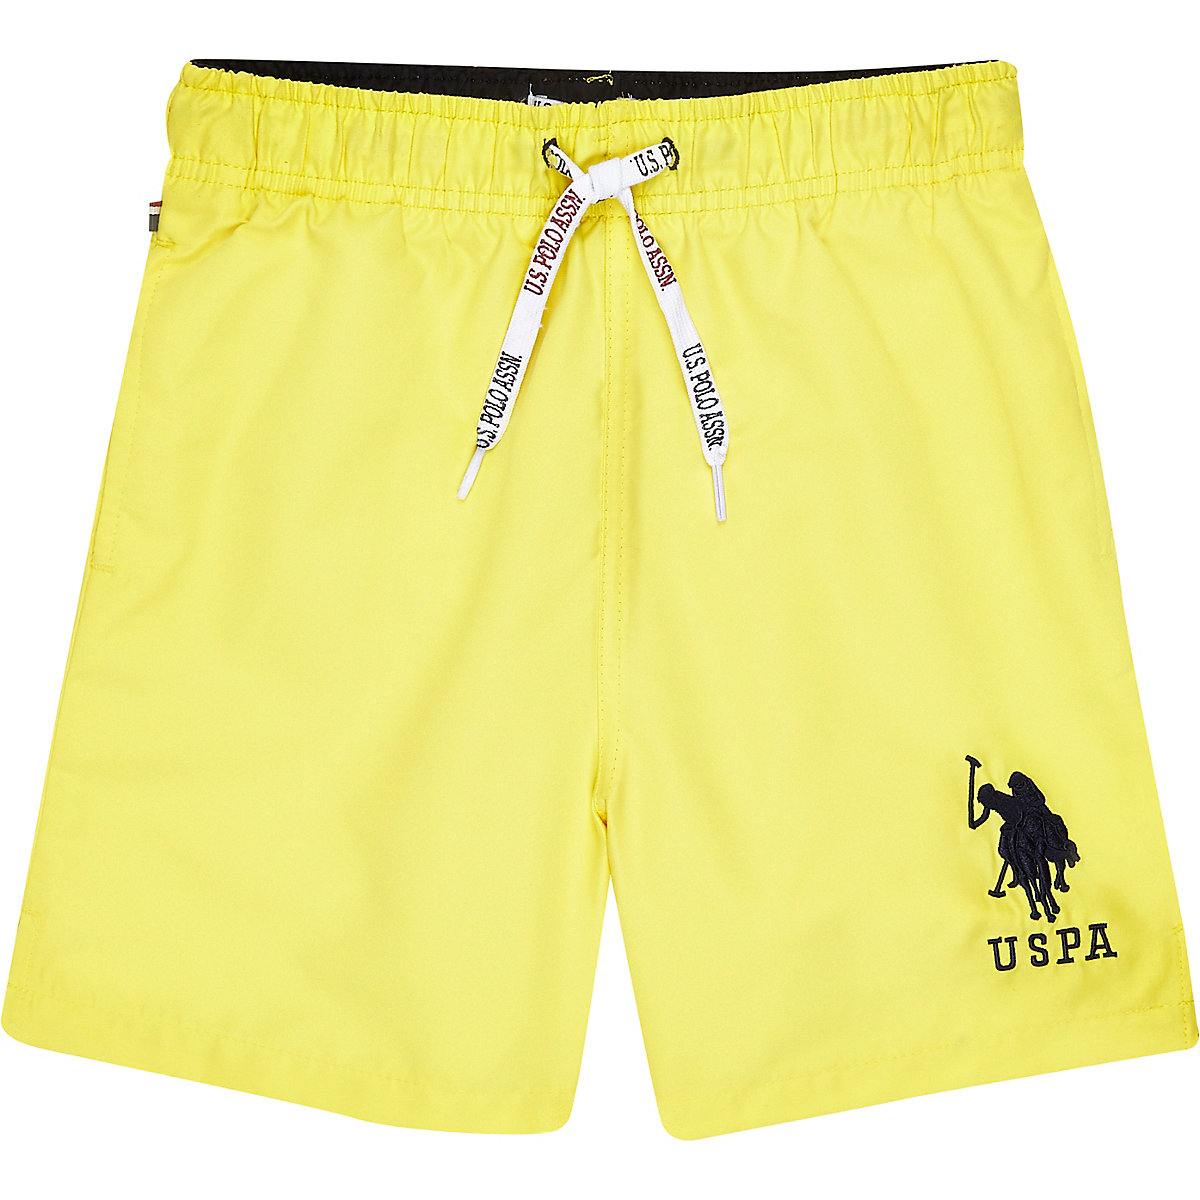 Boys Yellow U S Polo Assn Swim Shorts Swim Shorts Boys